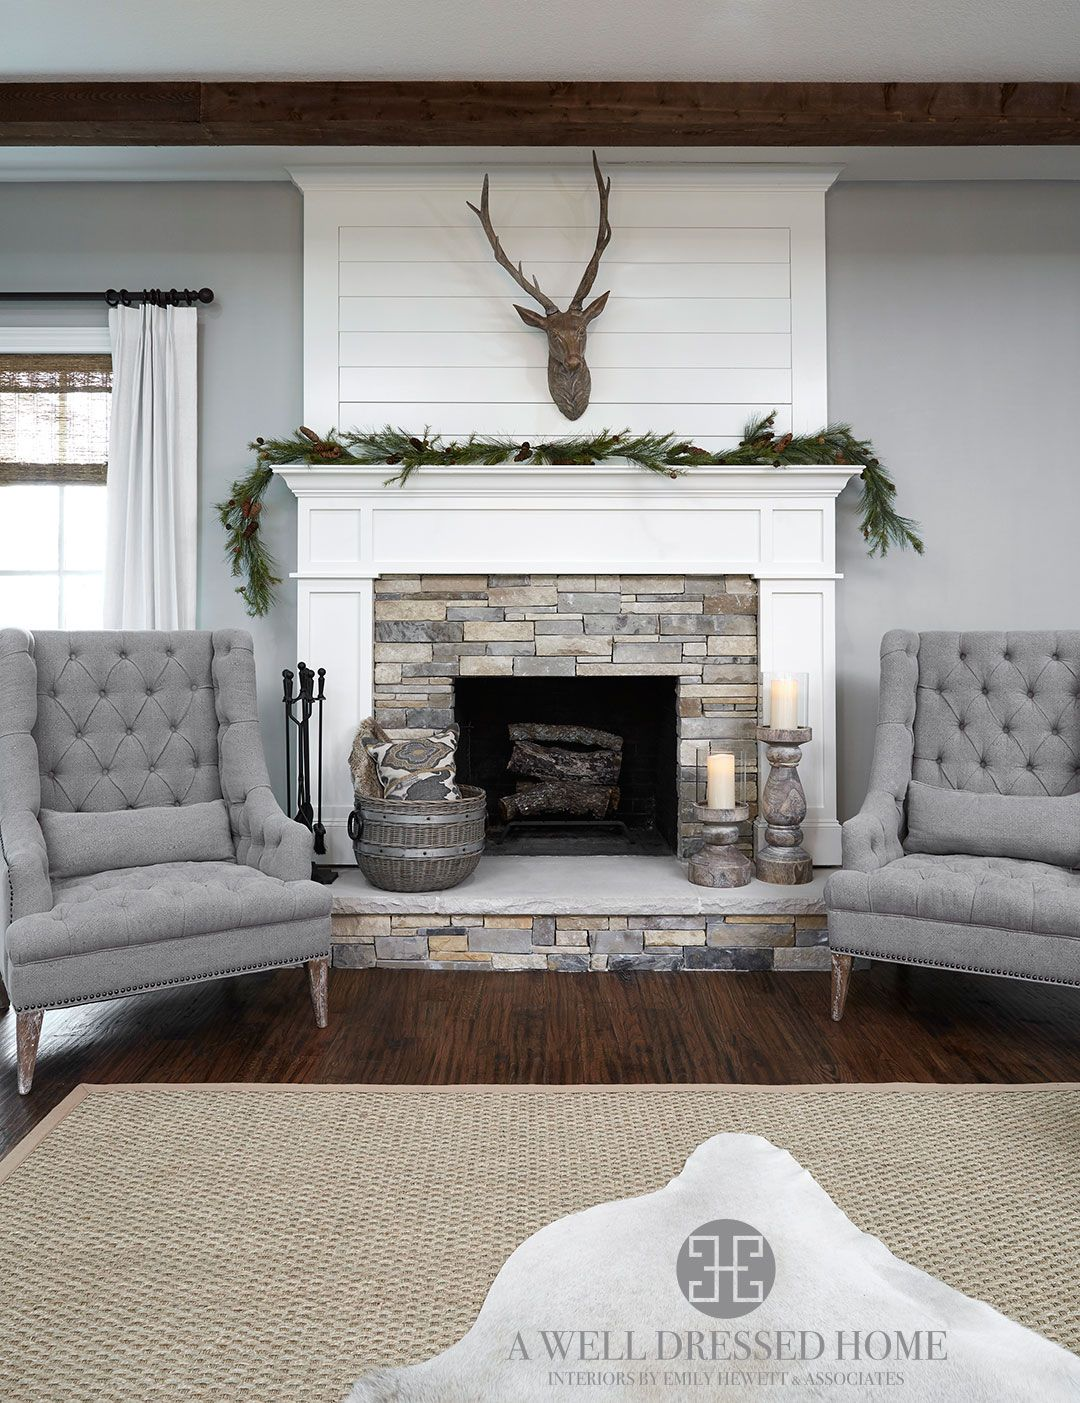 Aledo project  tv room  well dressed home shiplap fireplace accent wall with gray today note no deer head also best diy makeover images in decor living rh pinterest